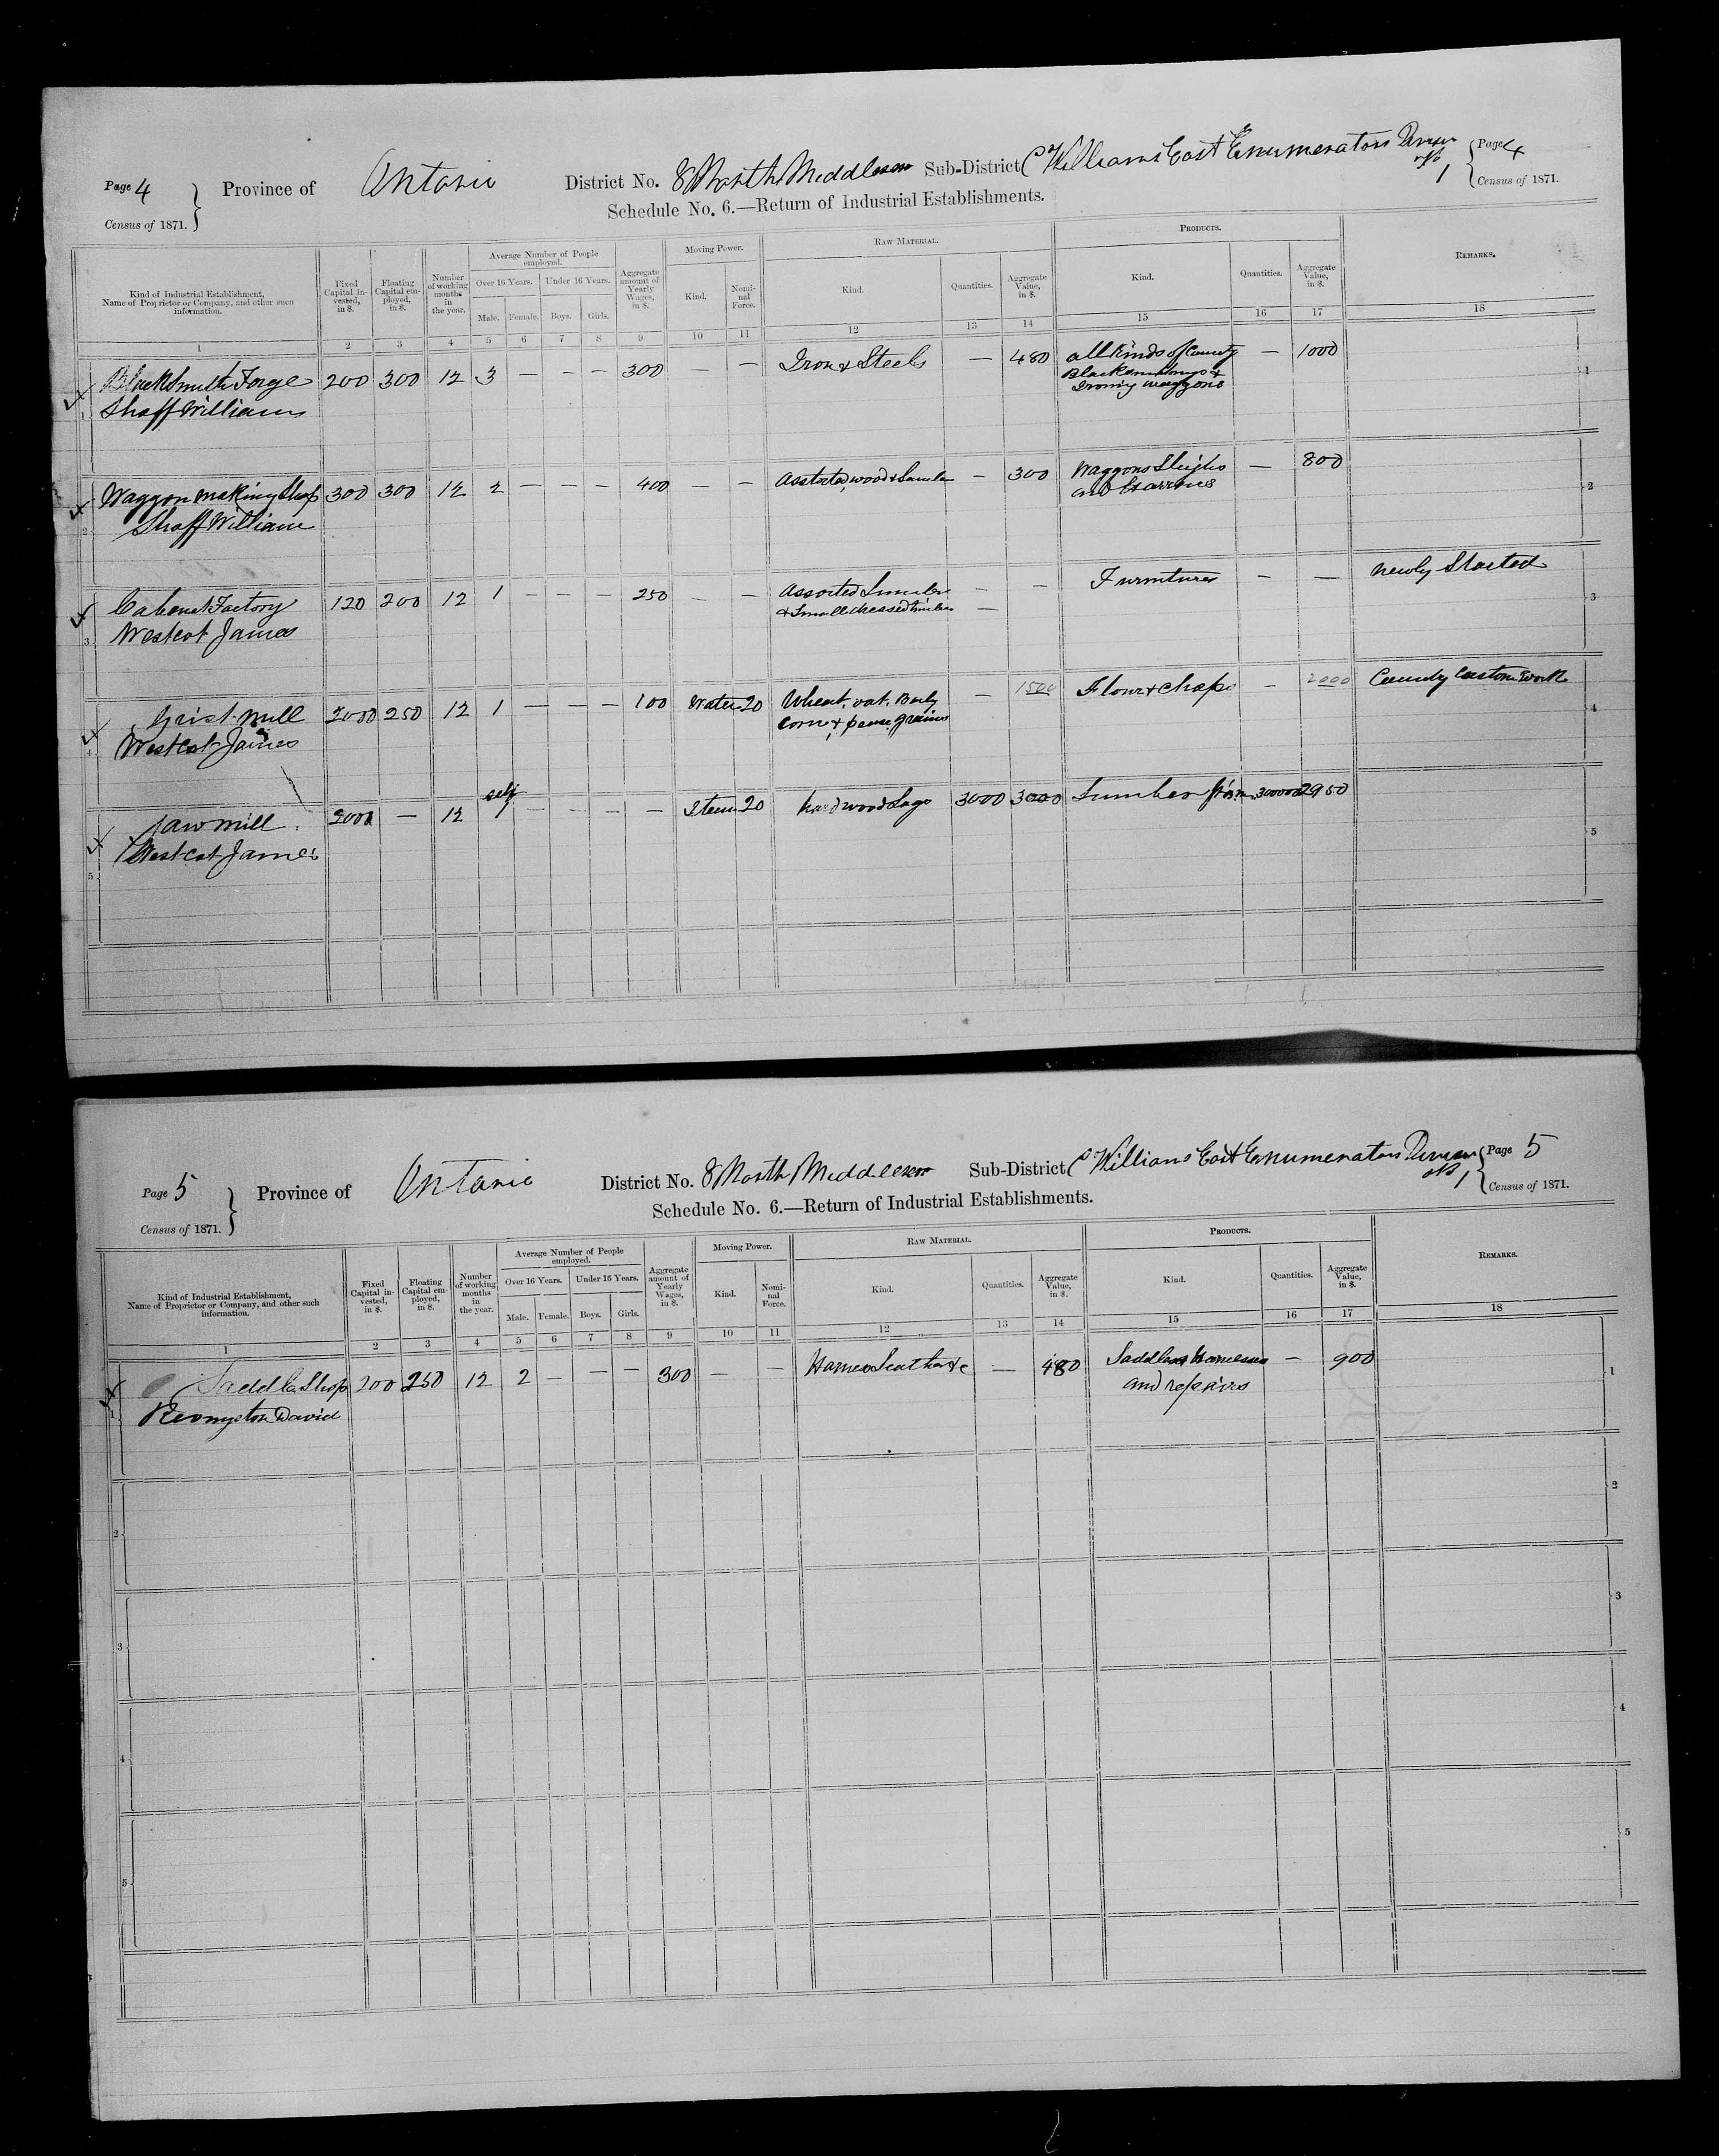 Title: Census of Canada, 1871 - Mikan Number: 142105 - Microform: c-9902